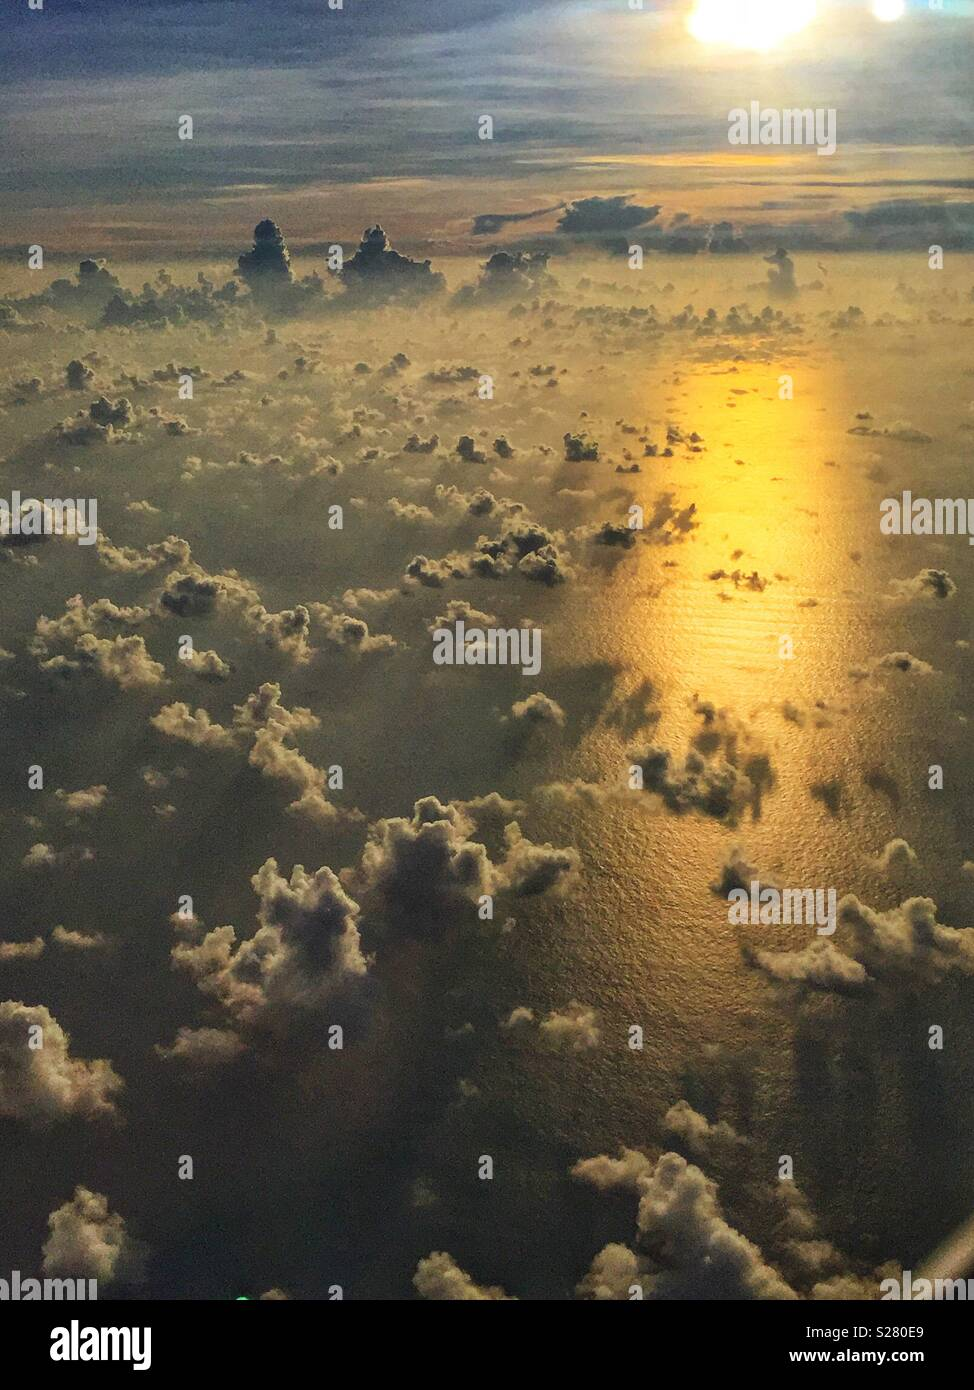 Clouds over the South China Sea in the golden light of late afternoon - Stock Image